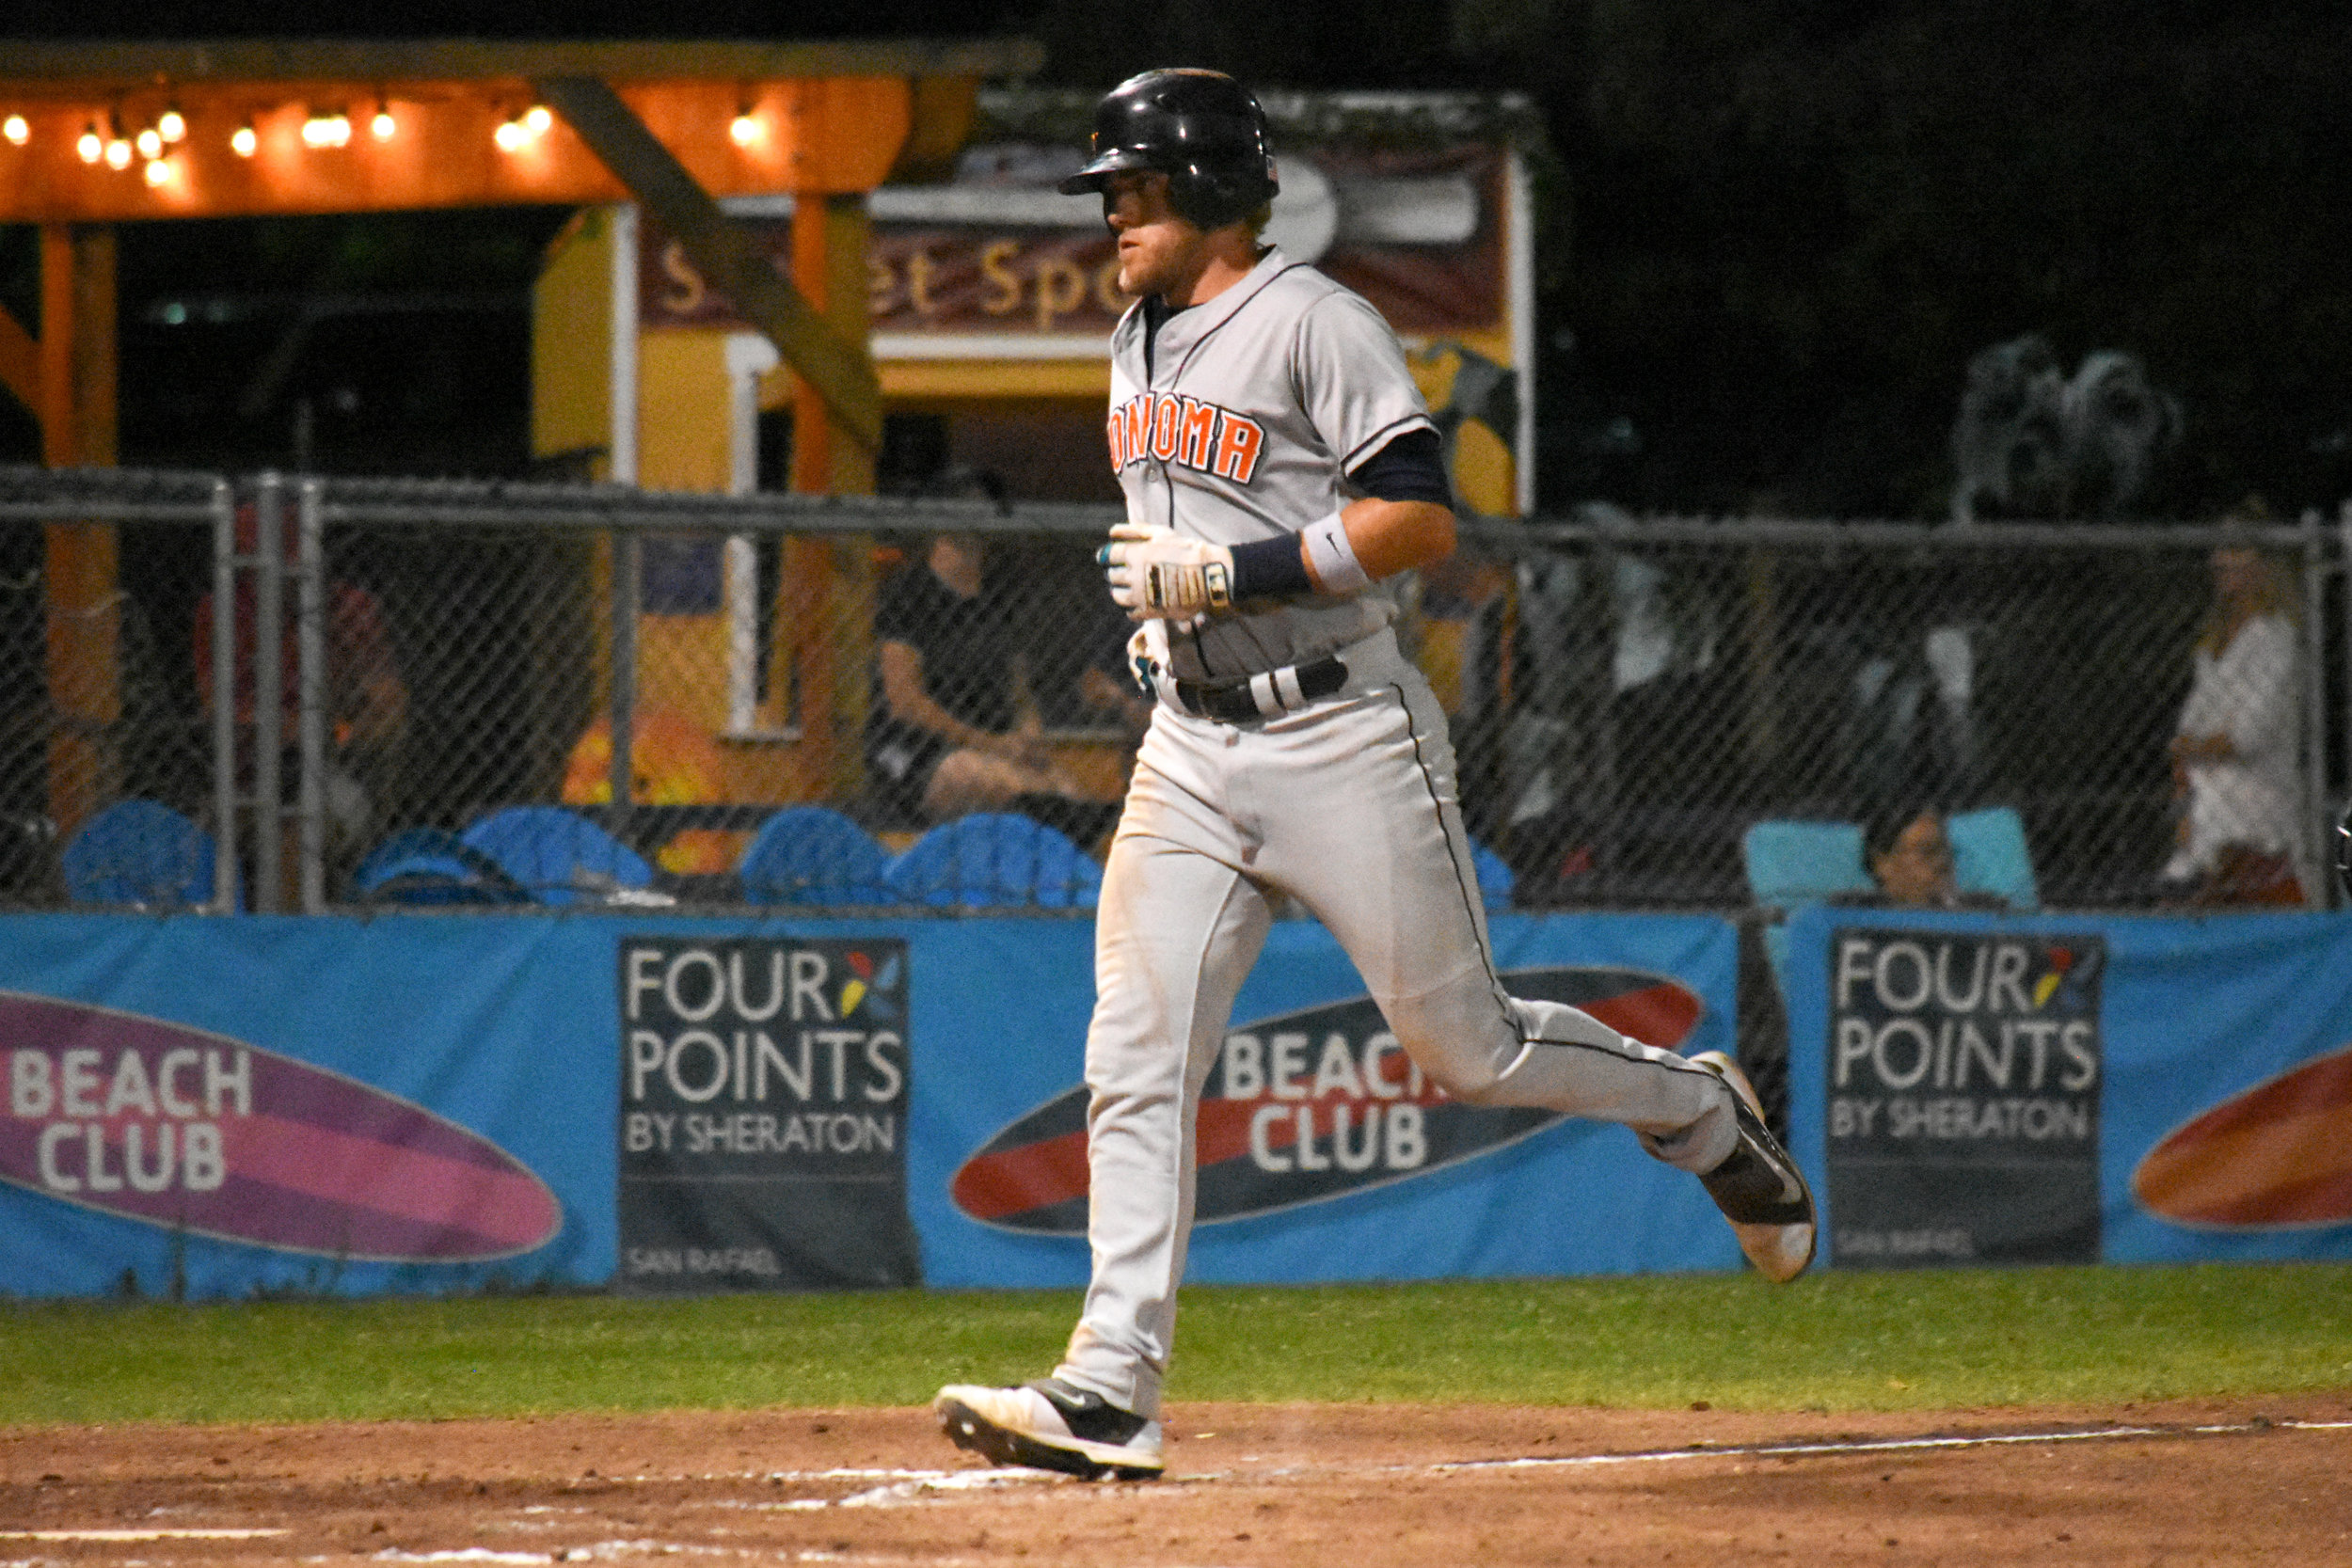 Kevin Farley trots home after hitting back-to-back home runs with Daniel Baptista in the seventh inning of the Sonoma Stompers game against the San Rafael Pacifics, August 9, 2018 in San Rafael, Calif.(James W. Toy III / Sonoma Stompers)